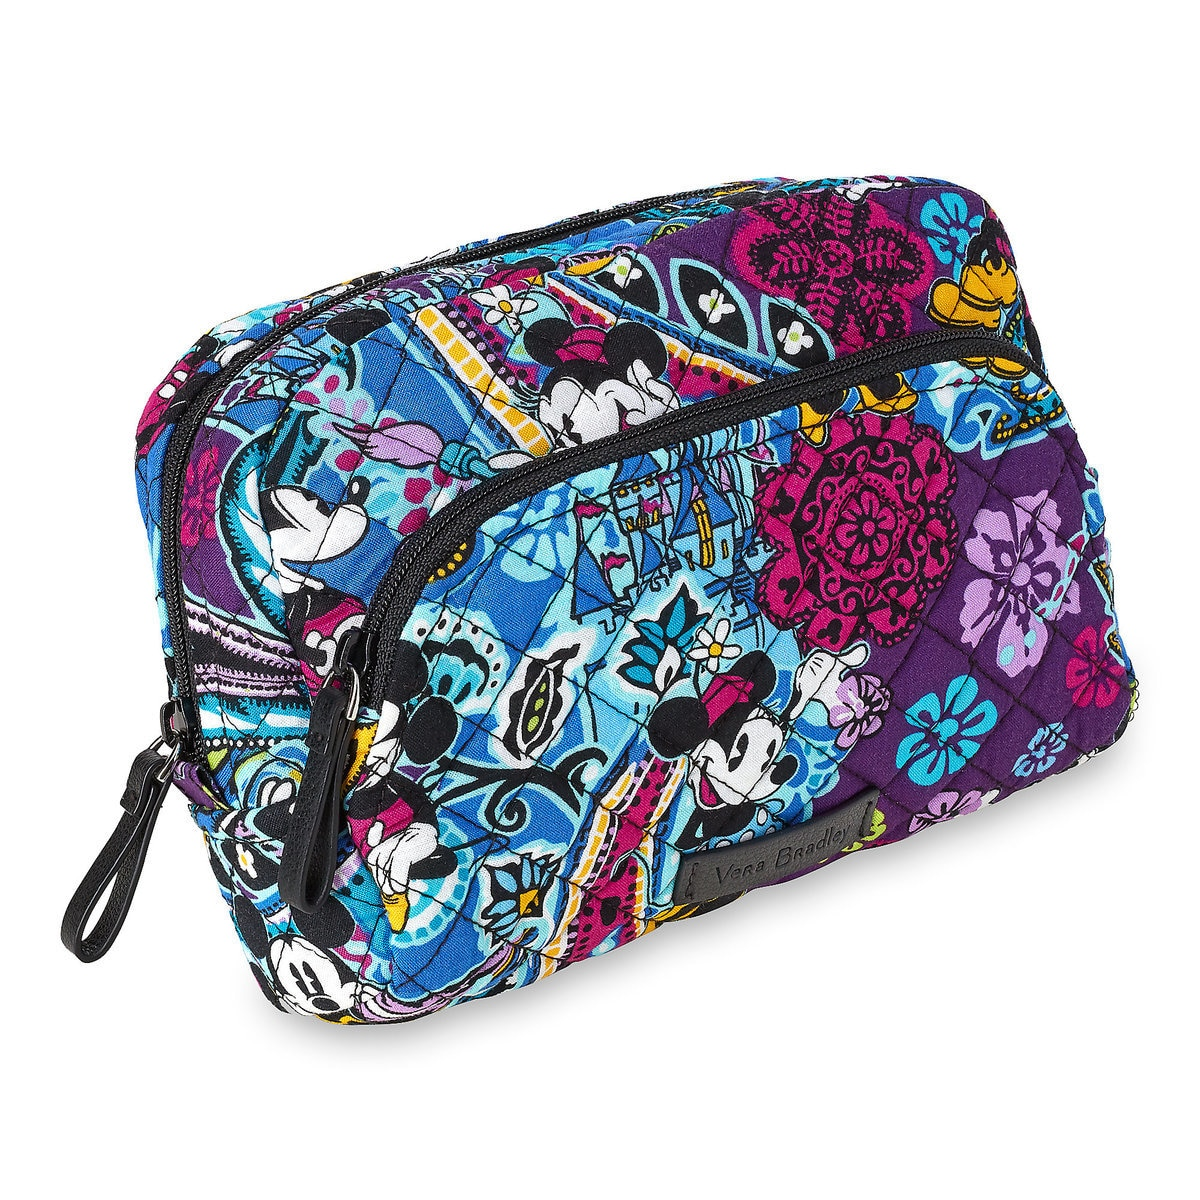 Vera Bradley Mickey and Minnie Paisley Medium Cosmetic Bag